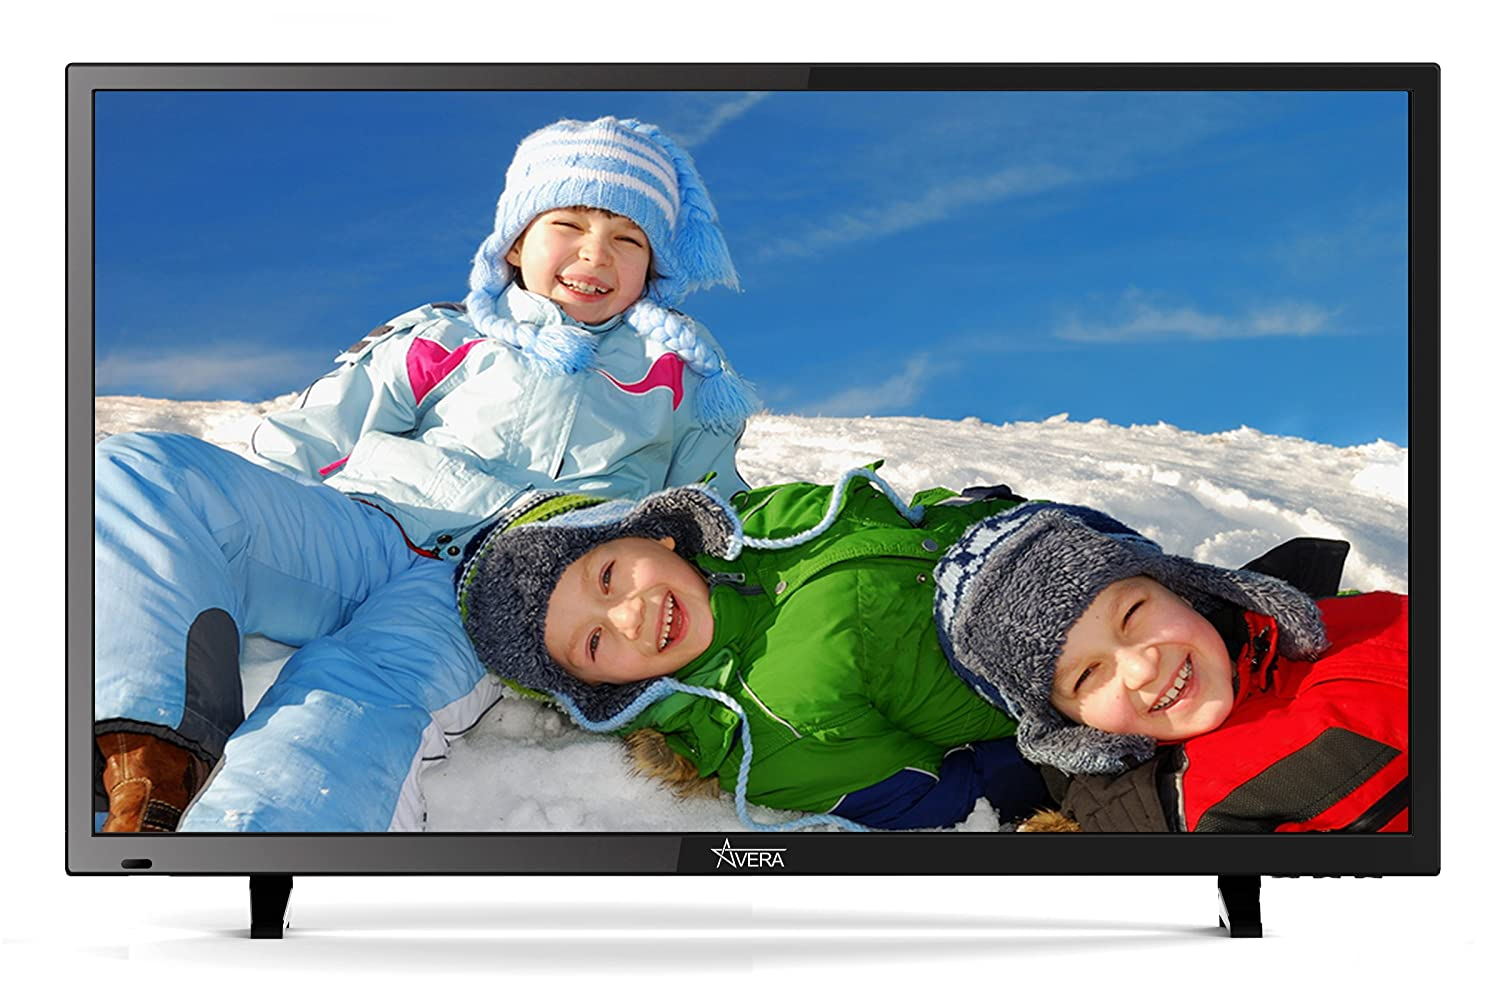 Avera 40AER10 40-Inch 1080p LED TV (2015 Model)